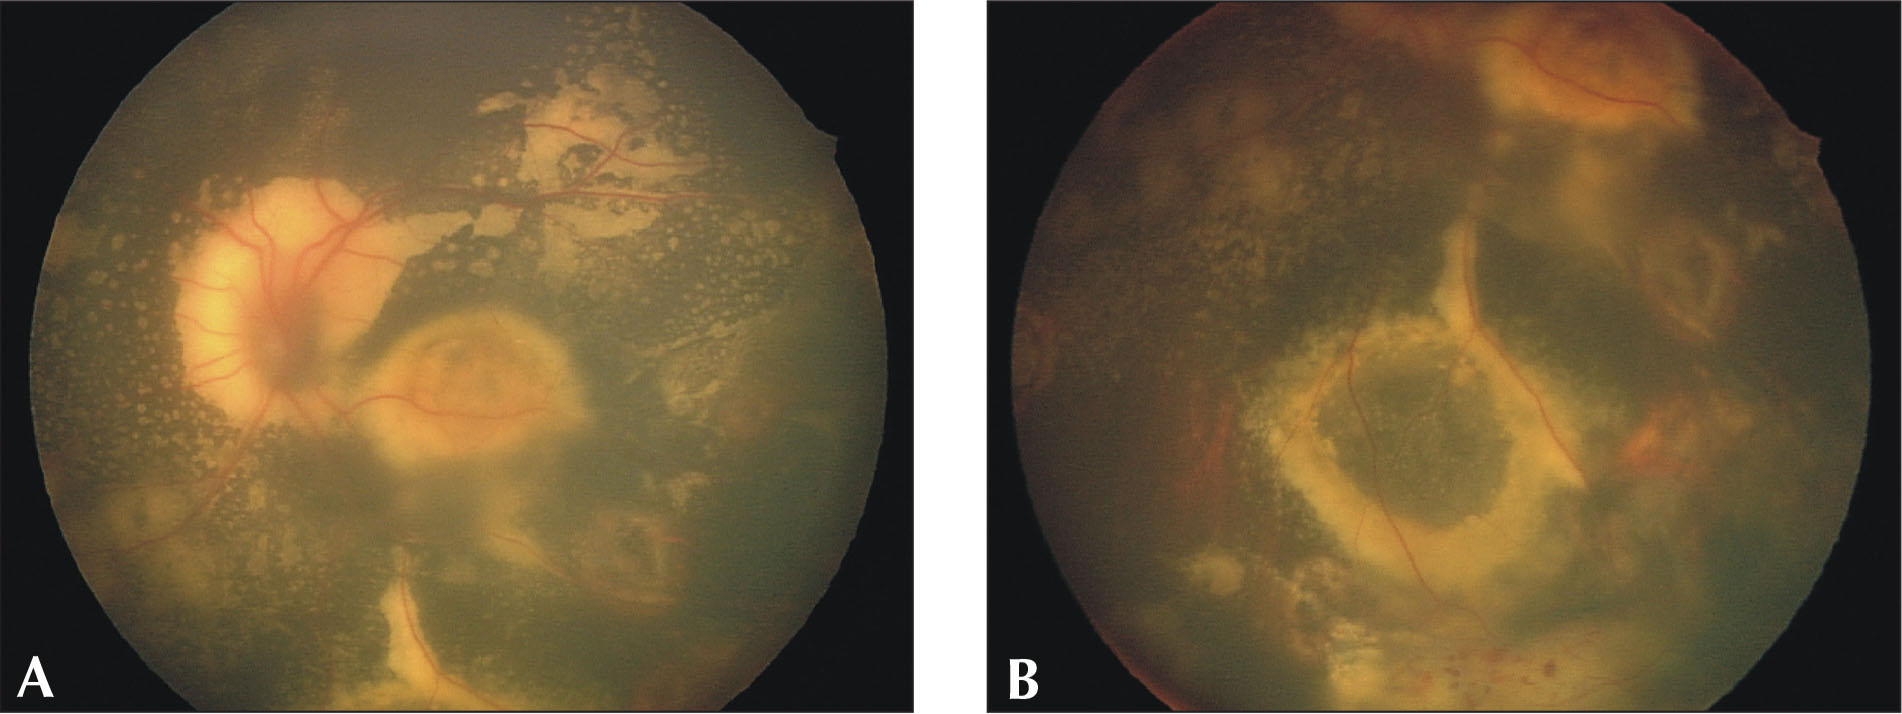 Six months after initial laser treatment, (A) the subretinal exudate is resolving and (B) the retinal macrocyst is consolidated.